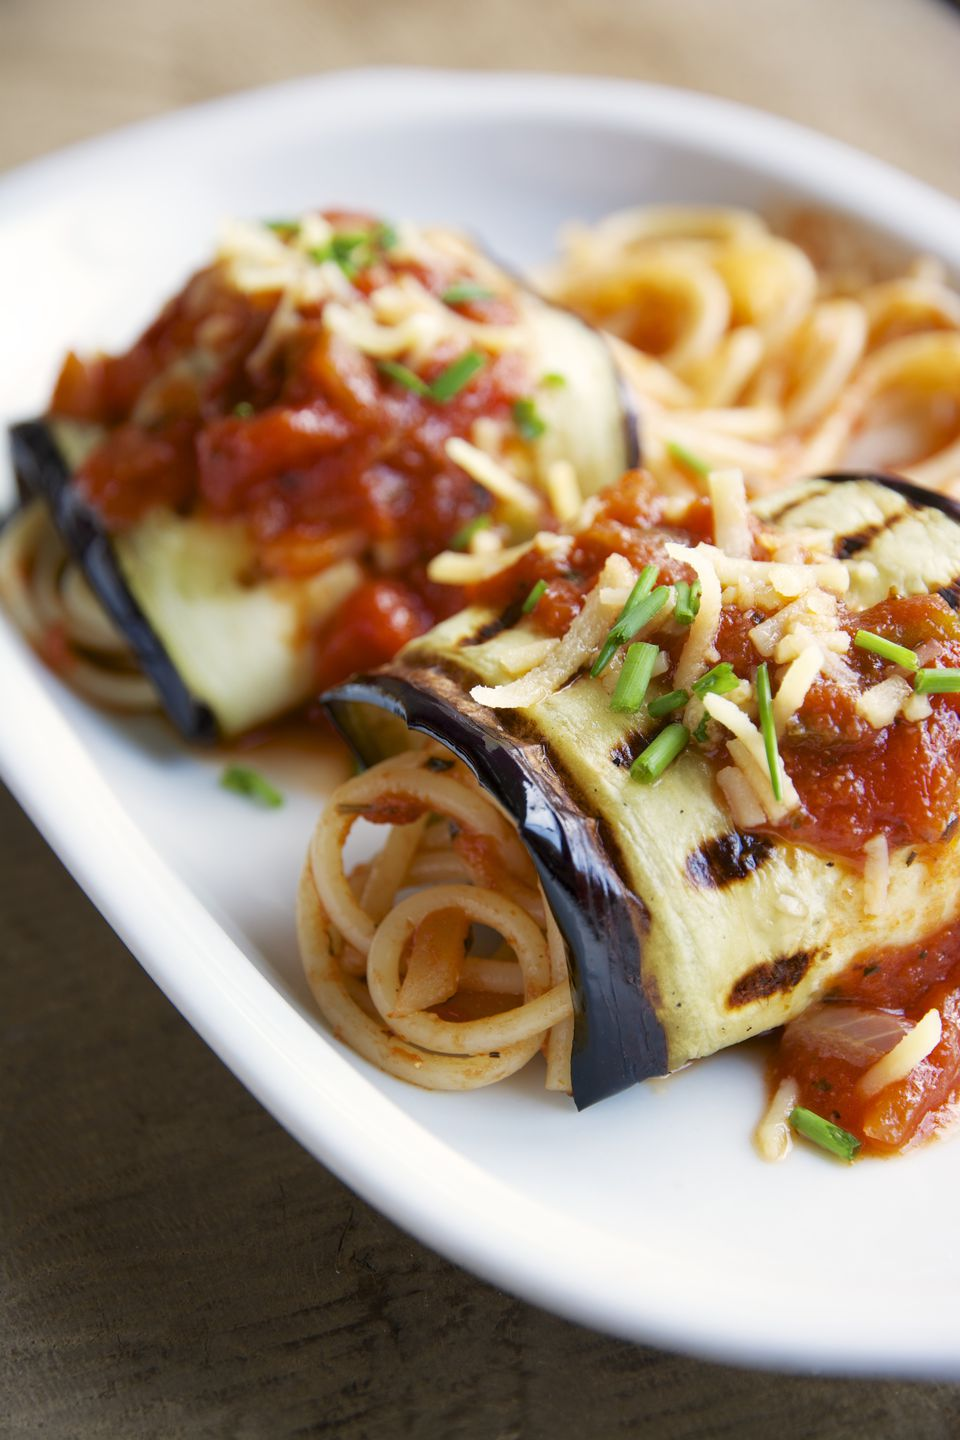 Eggplant and Spaghetti Involtini